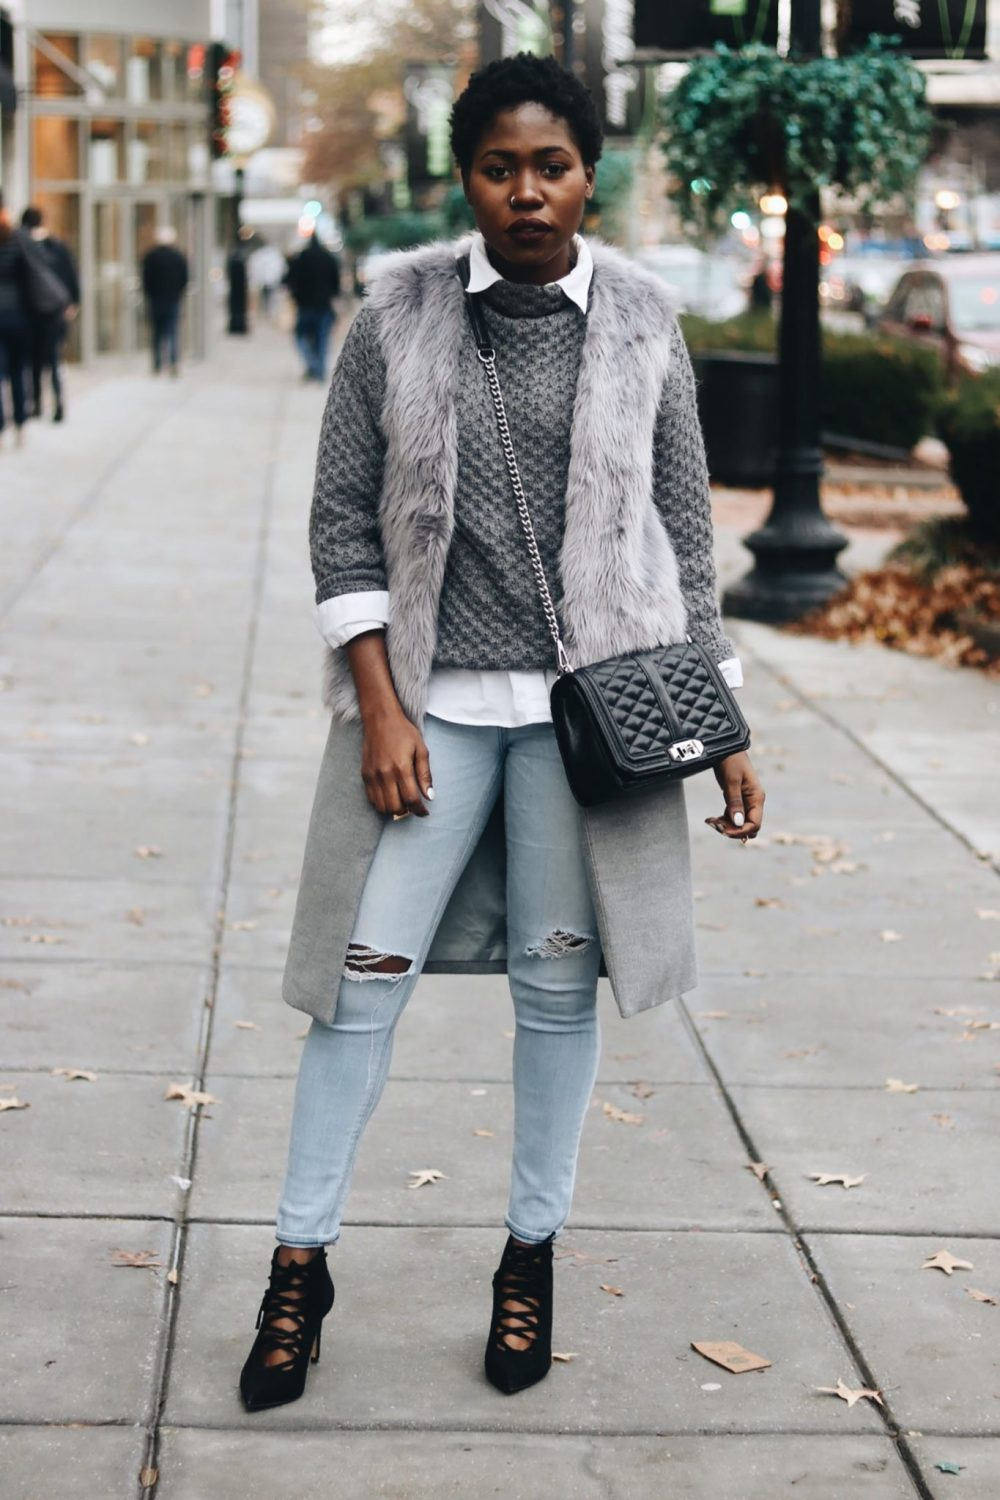 style-synopsis-grey-layers-winter-look